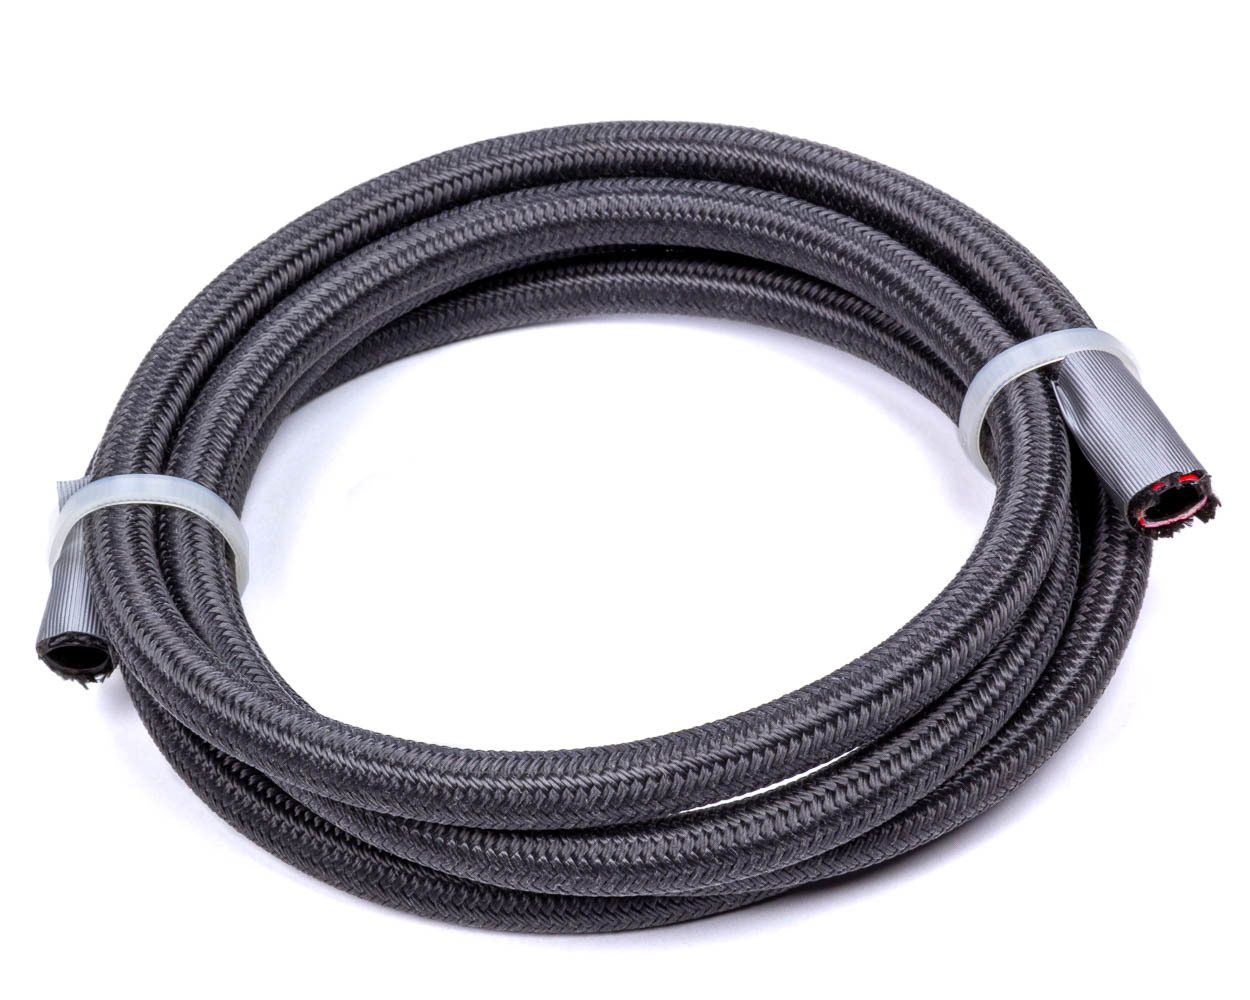 Fragola 2702004 Hose, 4 AN, 20 ft, Braided Fire Retardant Fabric, PTFE, Black, Each